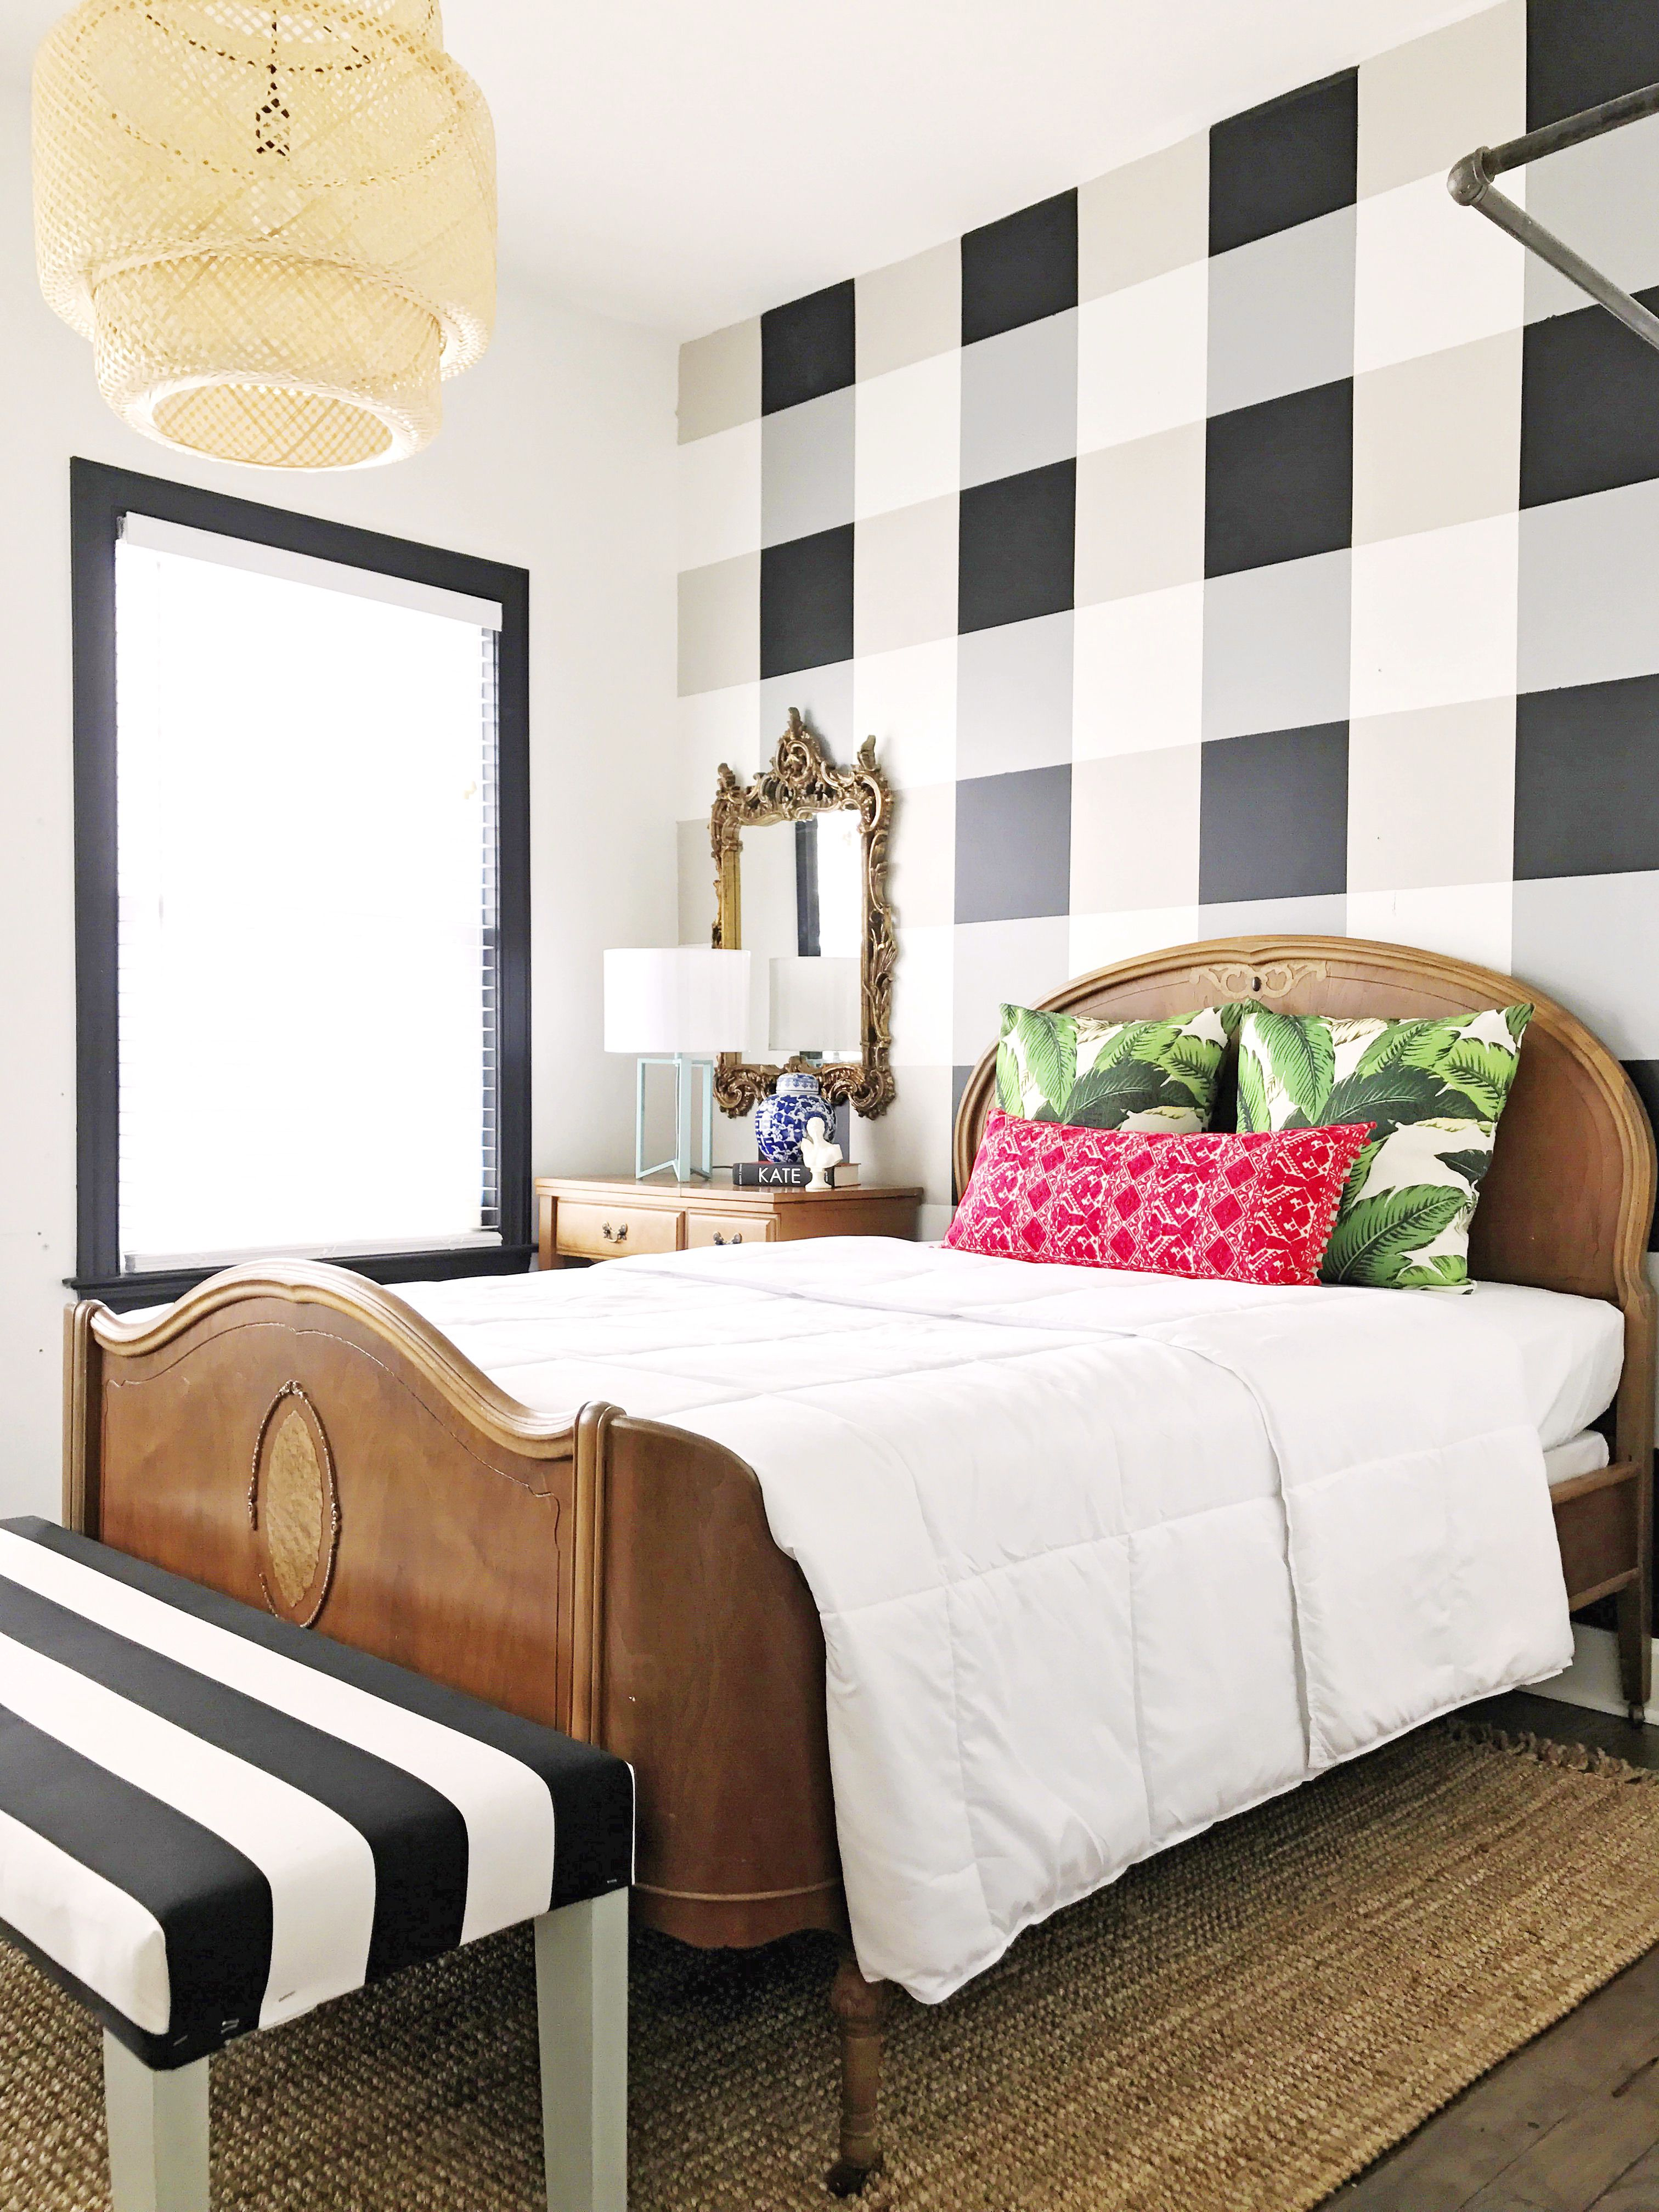 Bedroom Paint Color Ideas Best Paint Colors For Bedrooms,Shades Of Dark Purple Hair